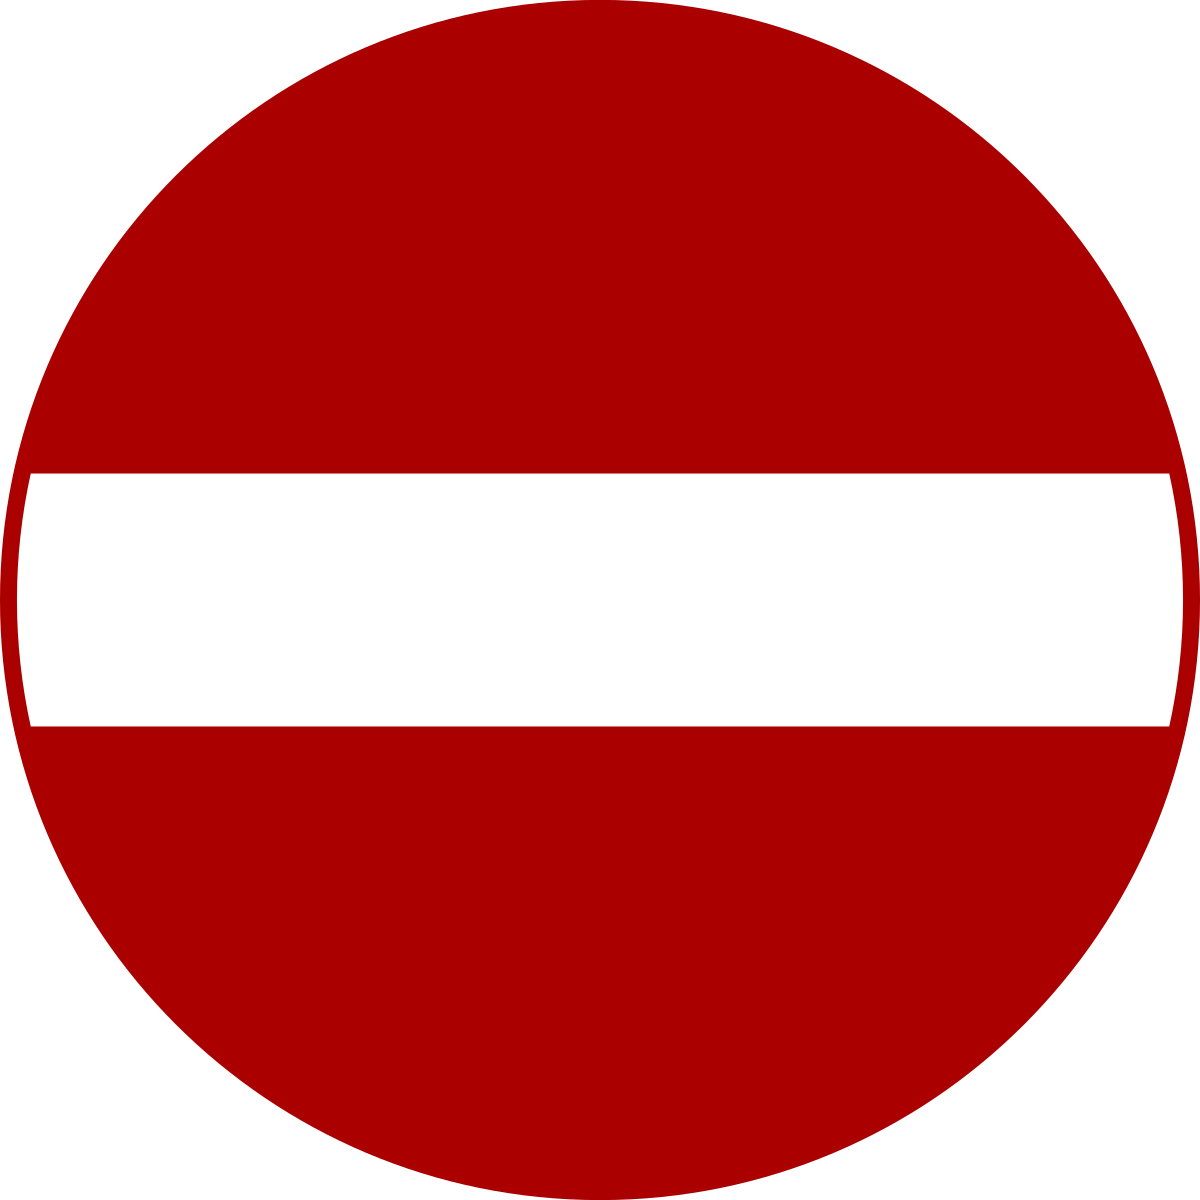 File:French traffic sign IV.